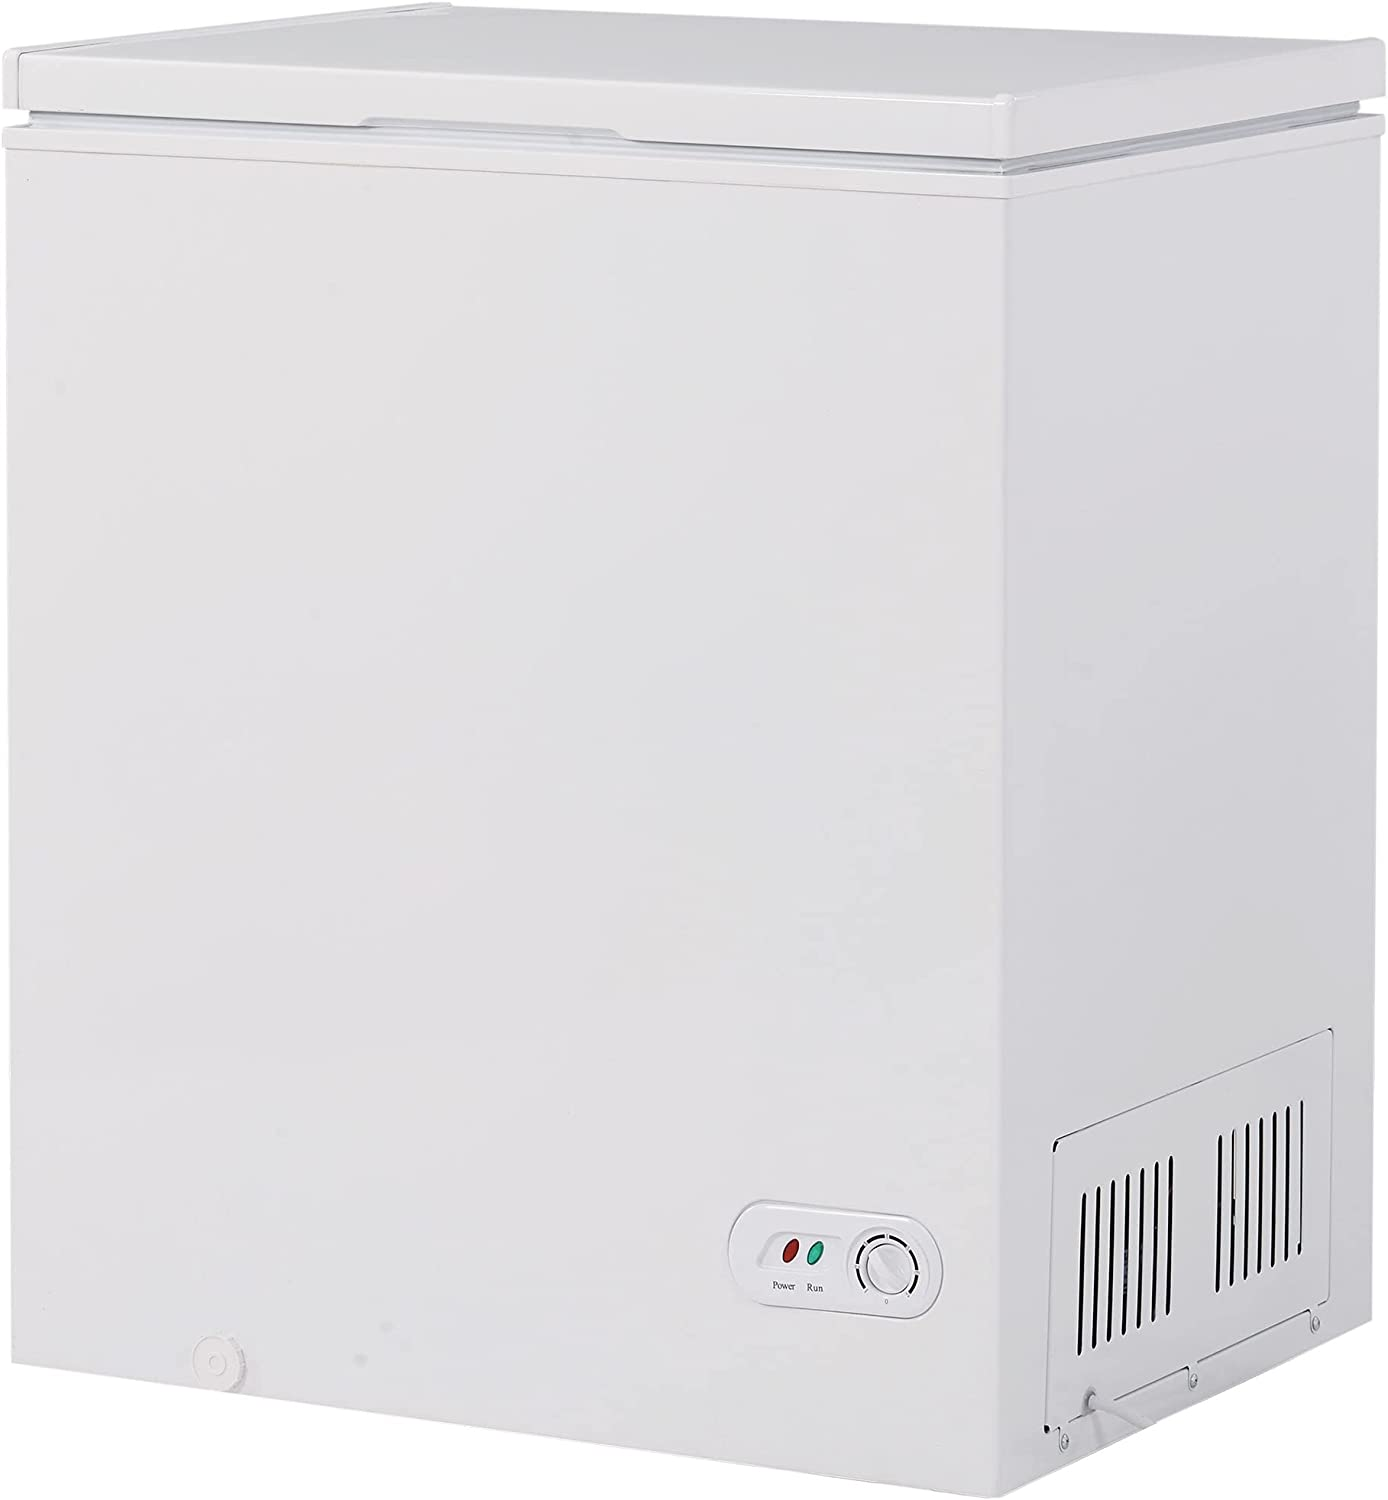 Bidook 5 cu.ft Chest Freezer Removable Open Challenge the lowest price of Japan ☆ Basket Outstanding Top Storage